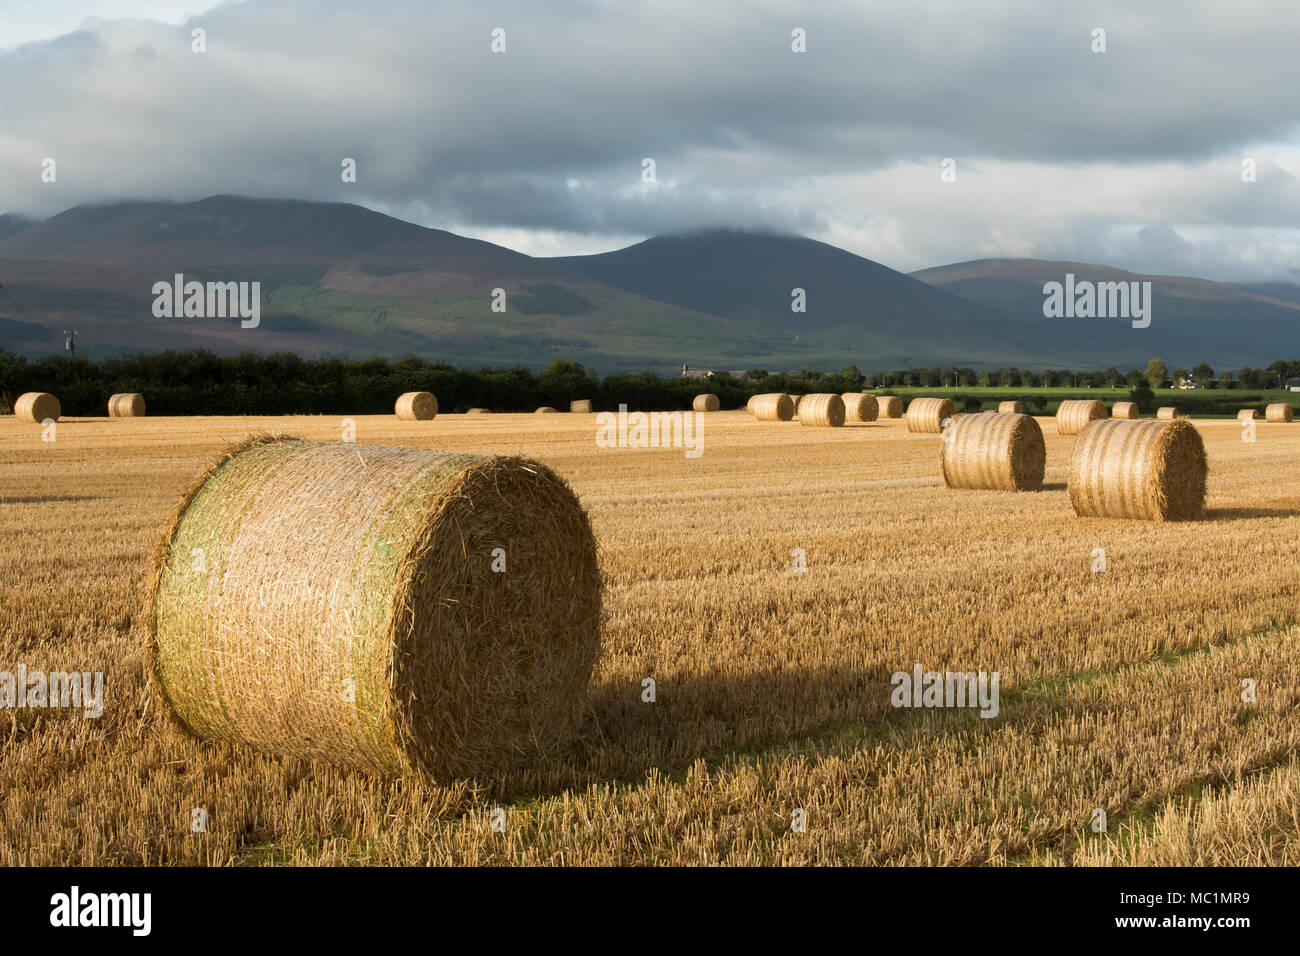 Round straw bales in corn field overlooking the Knockmealdown mountains. Ardfinnan, Tipperary, Ireland - Stock Image